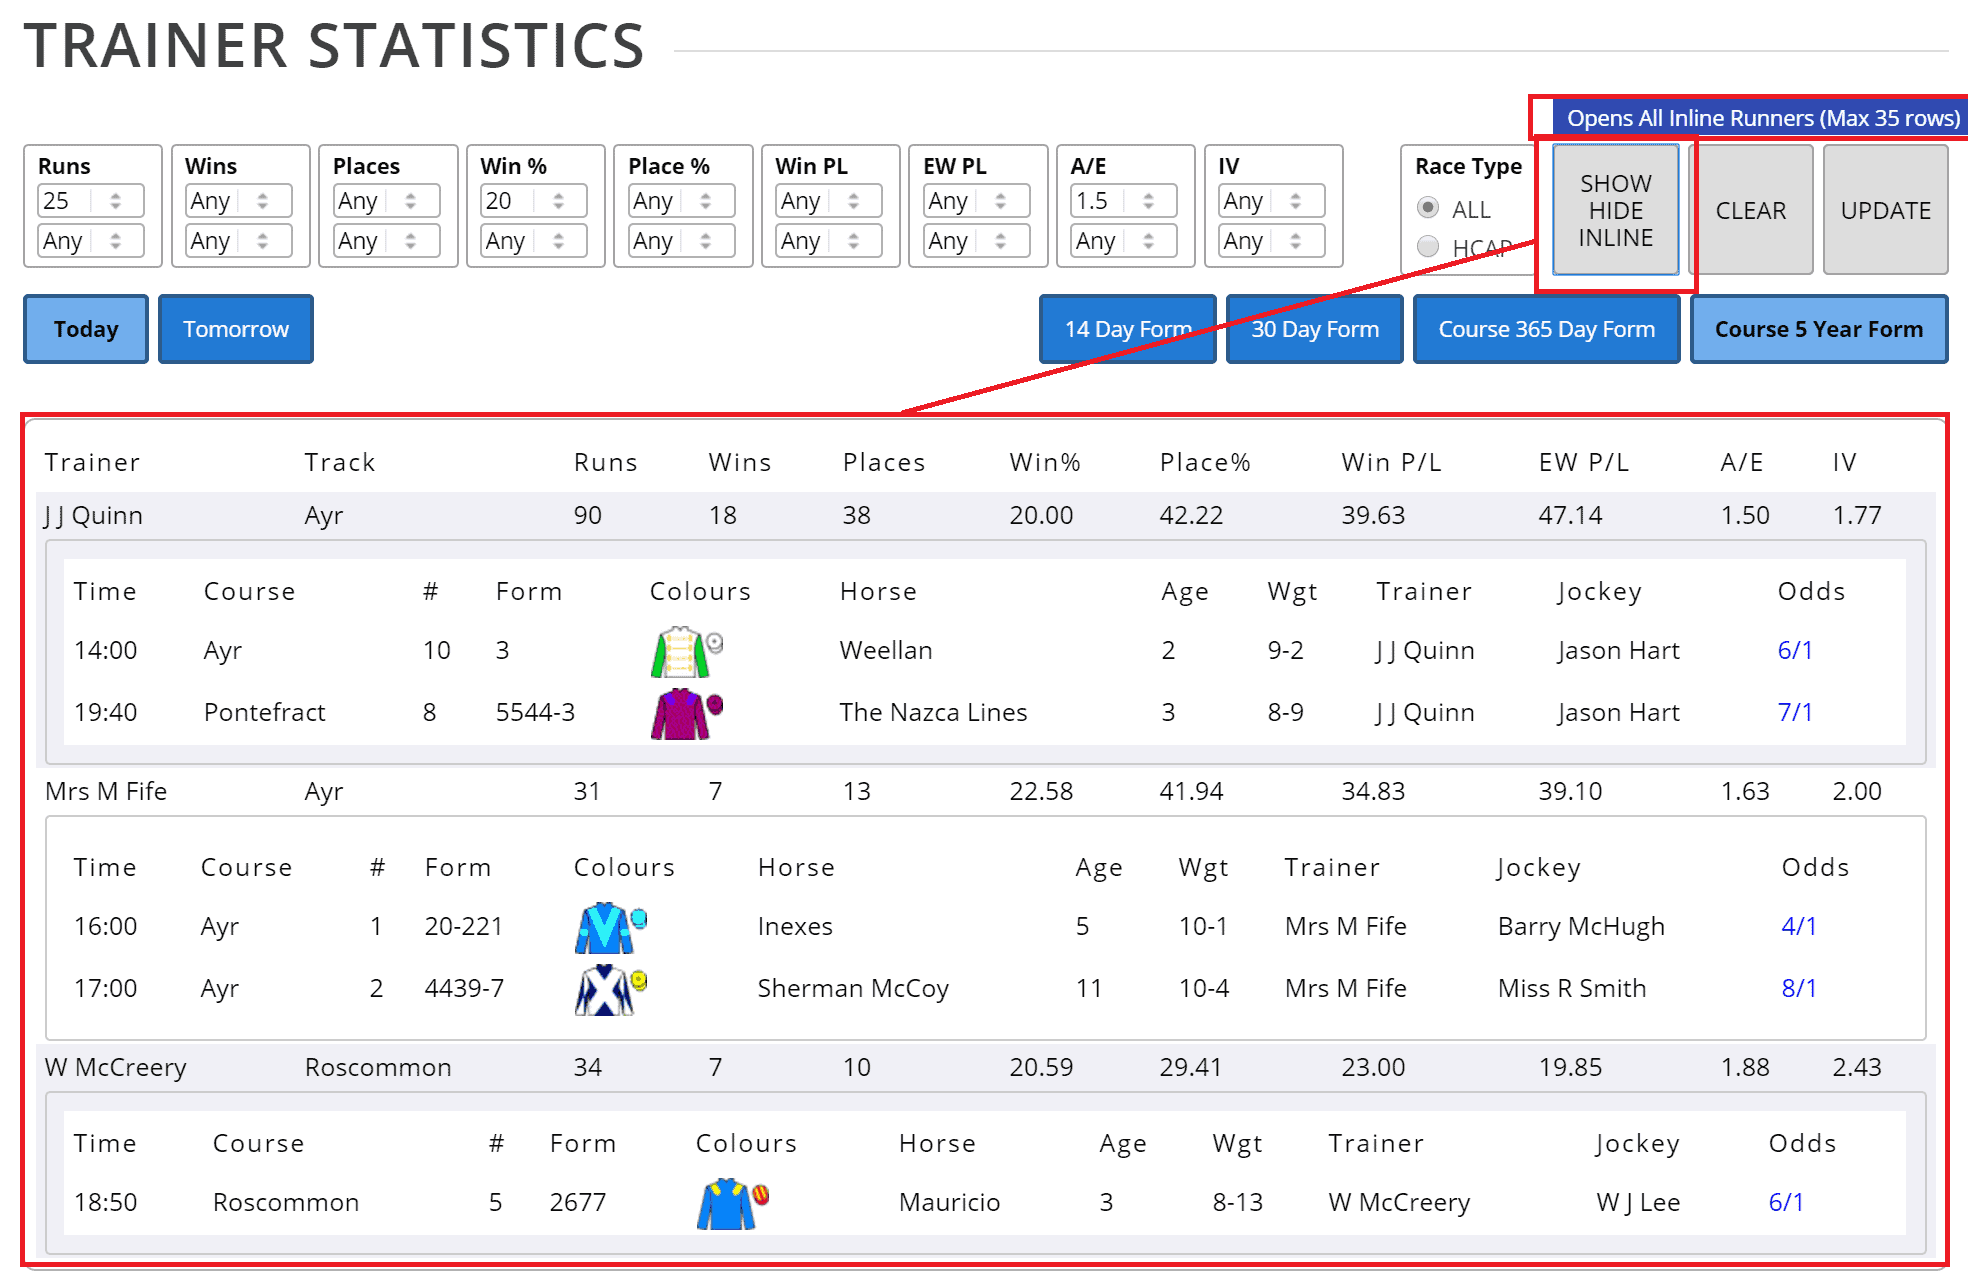 One click reveals/hides all inline content on trainer, jockey, sire reports